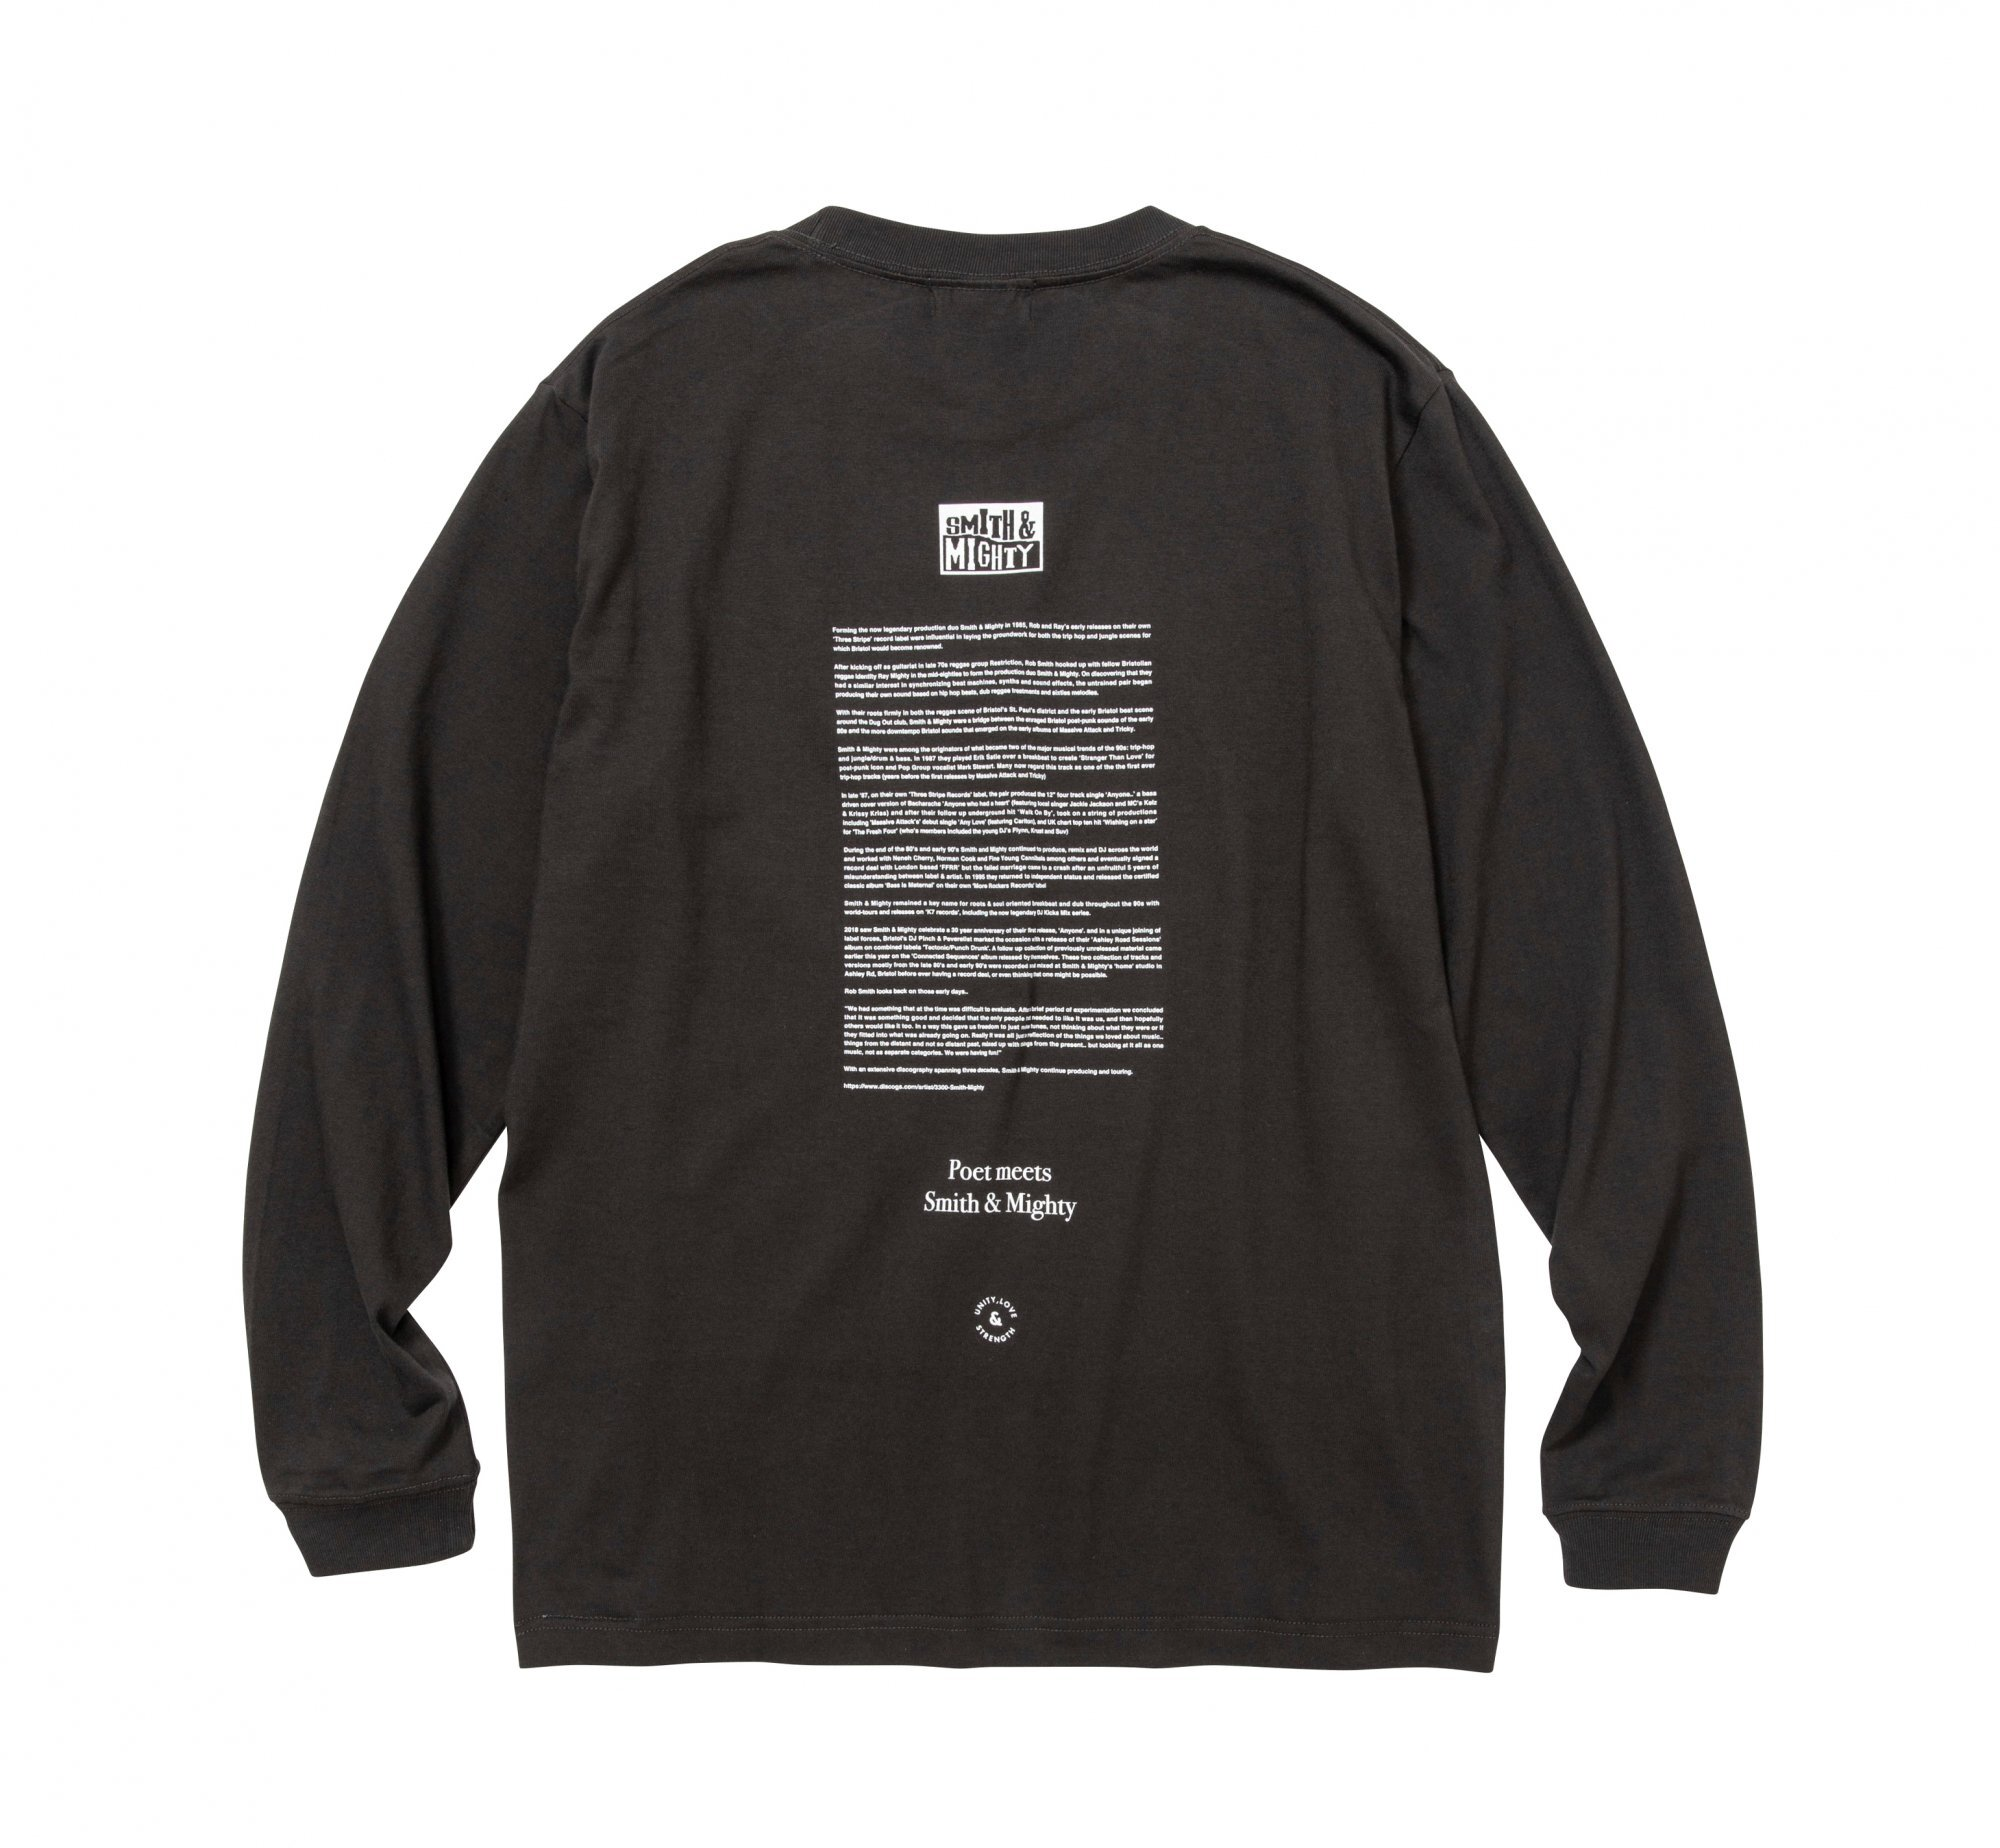 POET MEETS DUBWISE / SMITH & MIGHTY LONG SLEEVE TEE